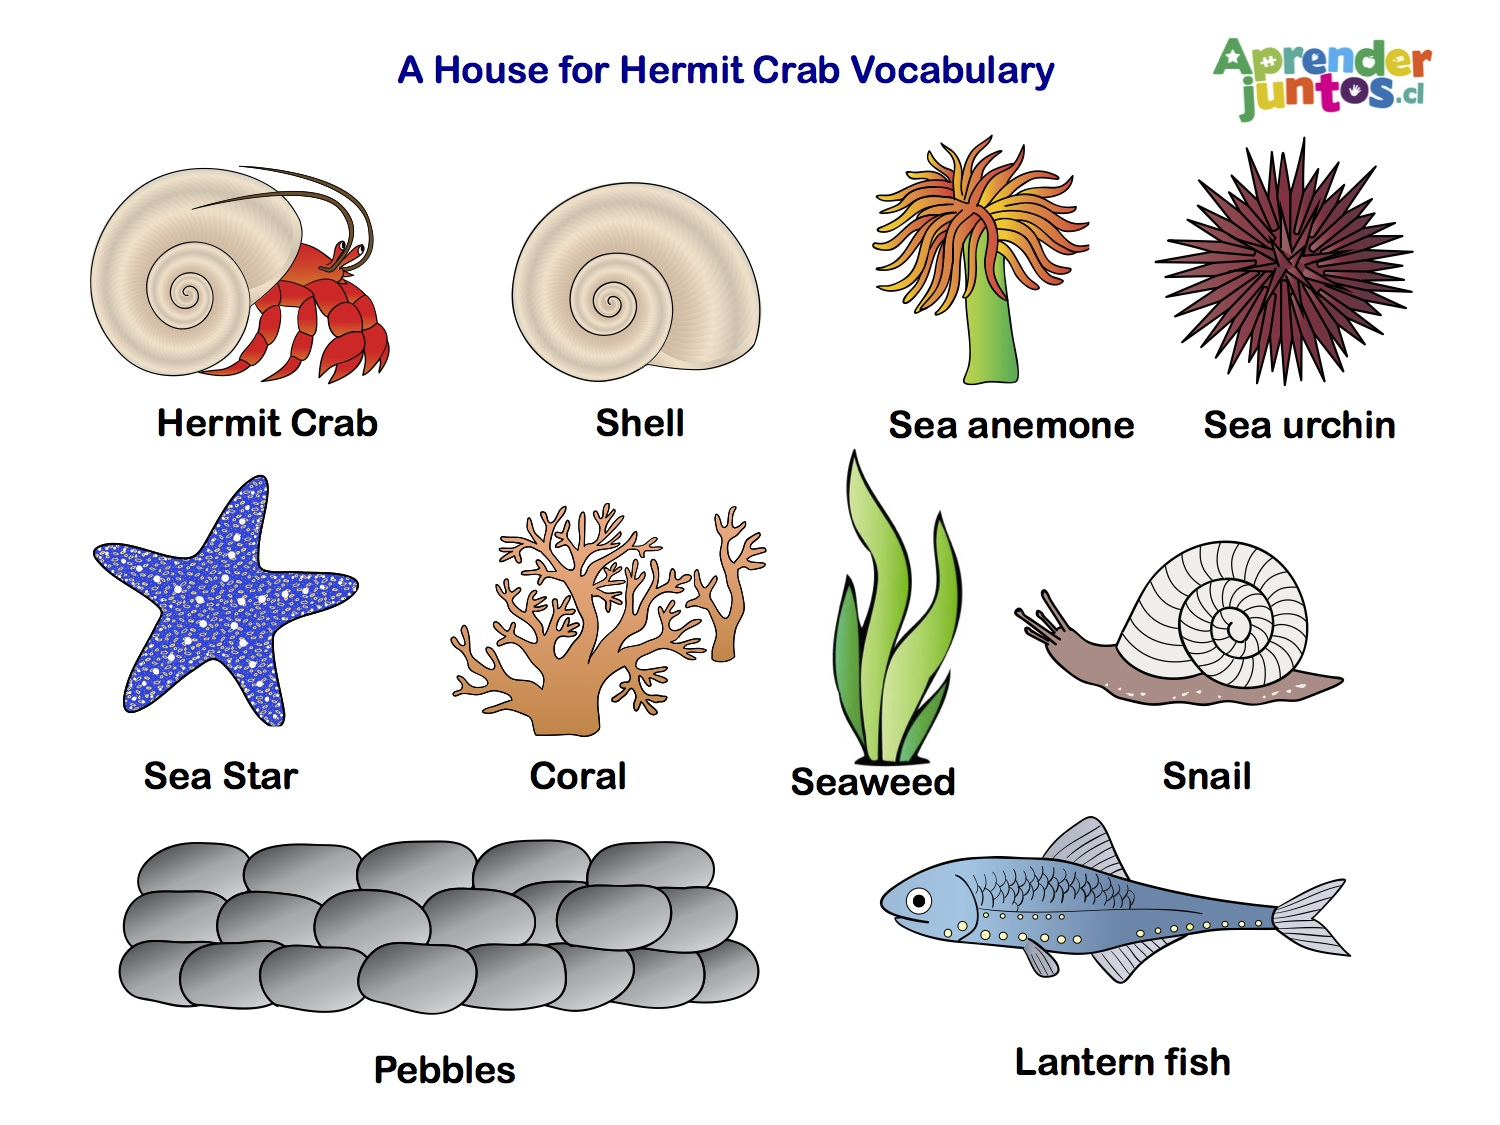 Hermit Crab Vocabulary copia